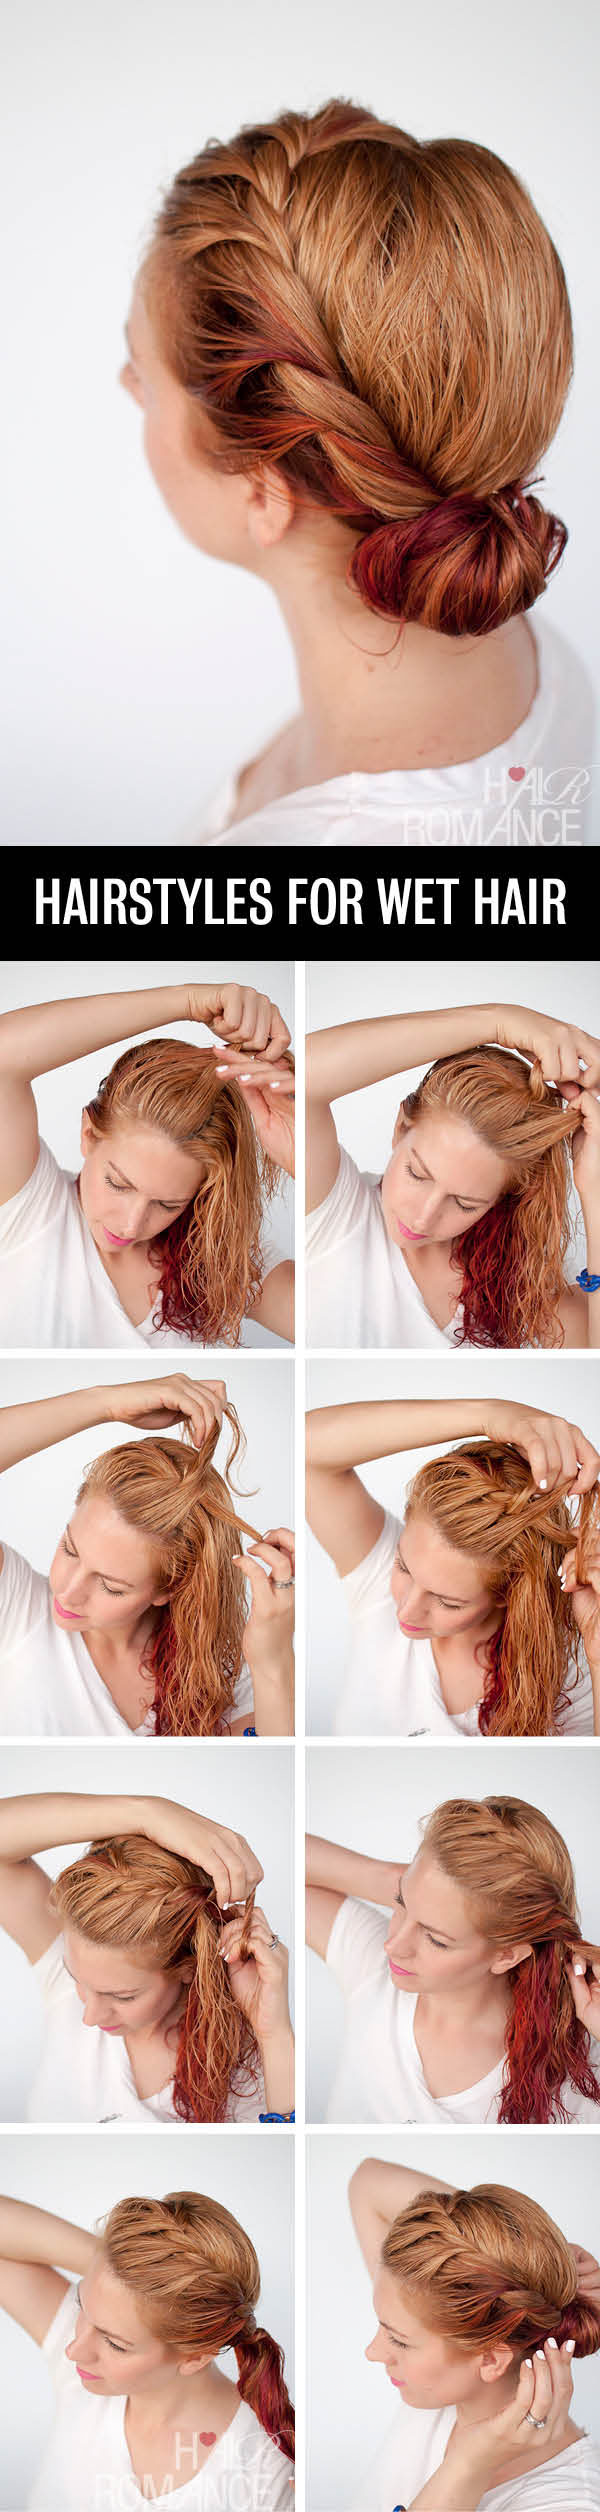 7 Amazing Wet Hairstyles At Home The Spectre